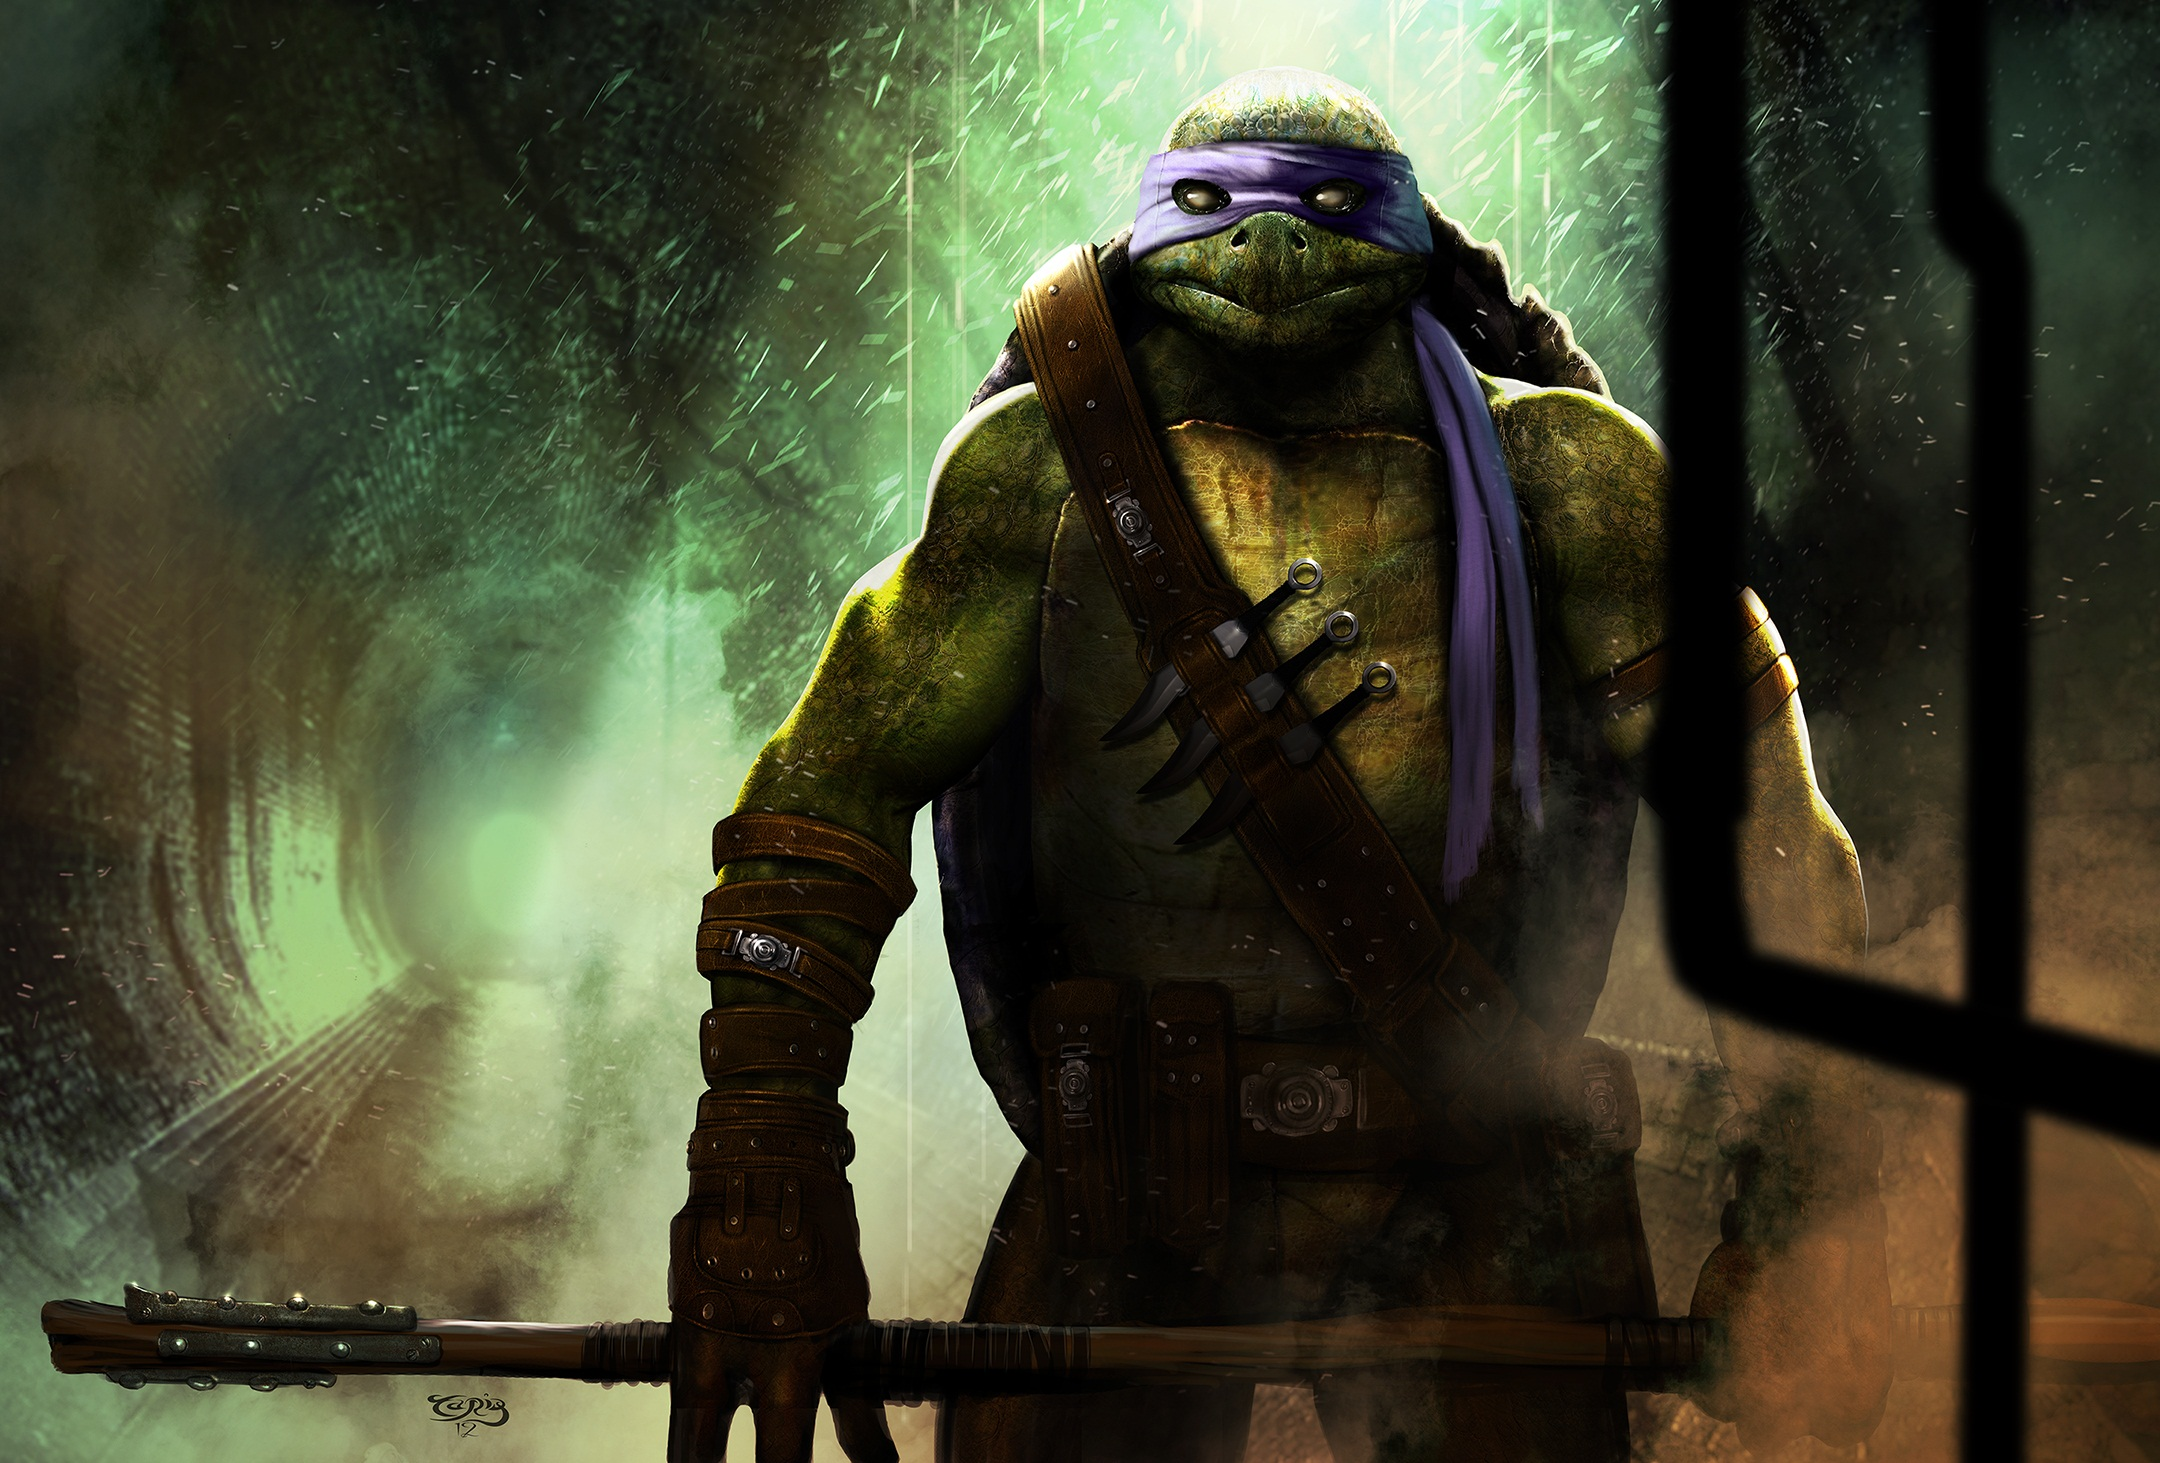 TMNT wallpaper miscellaneous 29 (2160x1463)